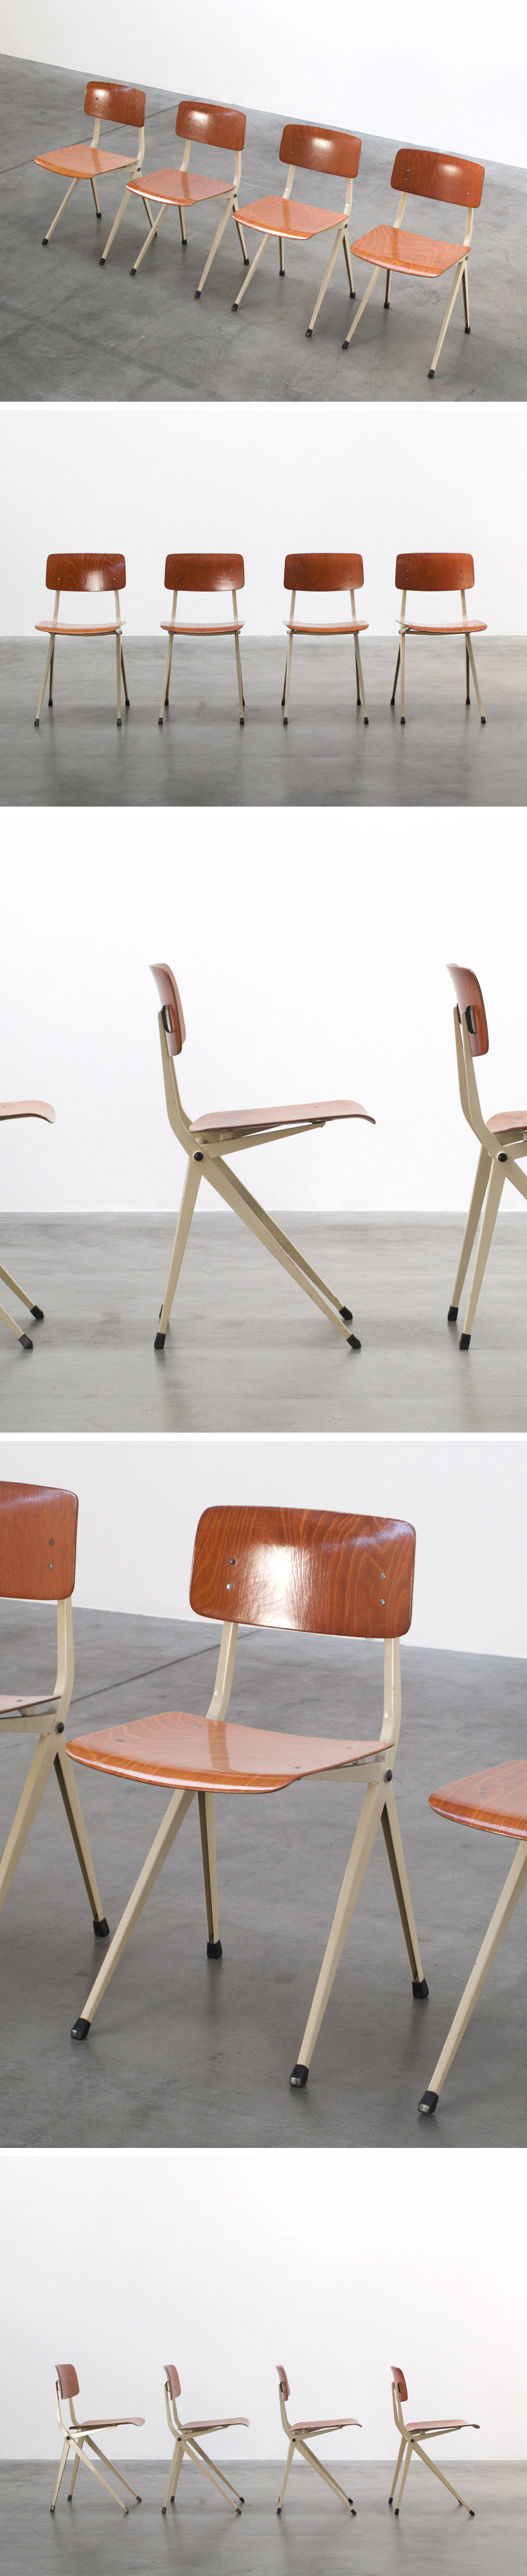 De Marko 4 Industrial chairs Large